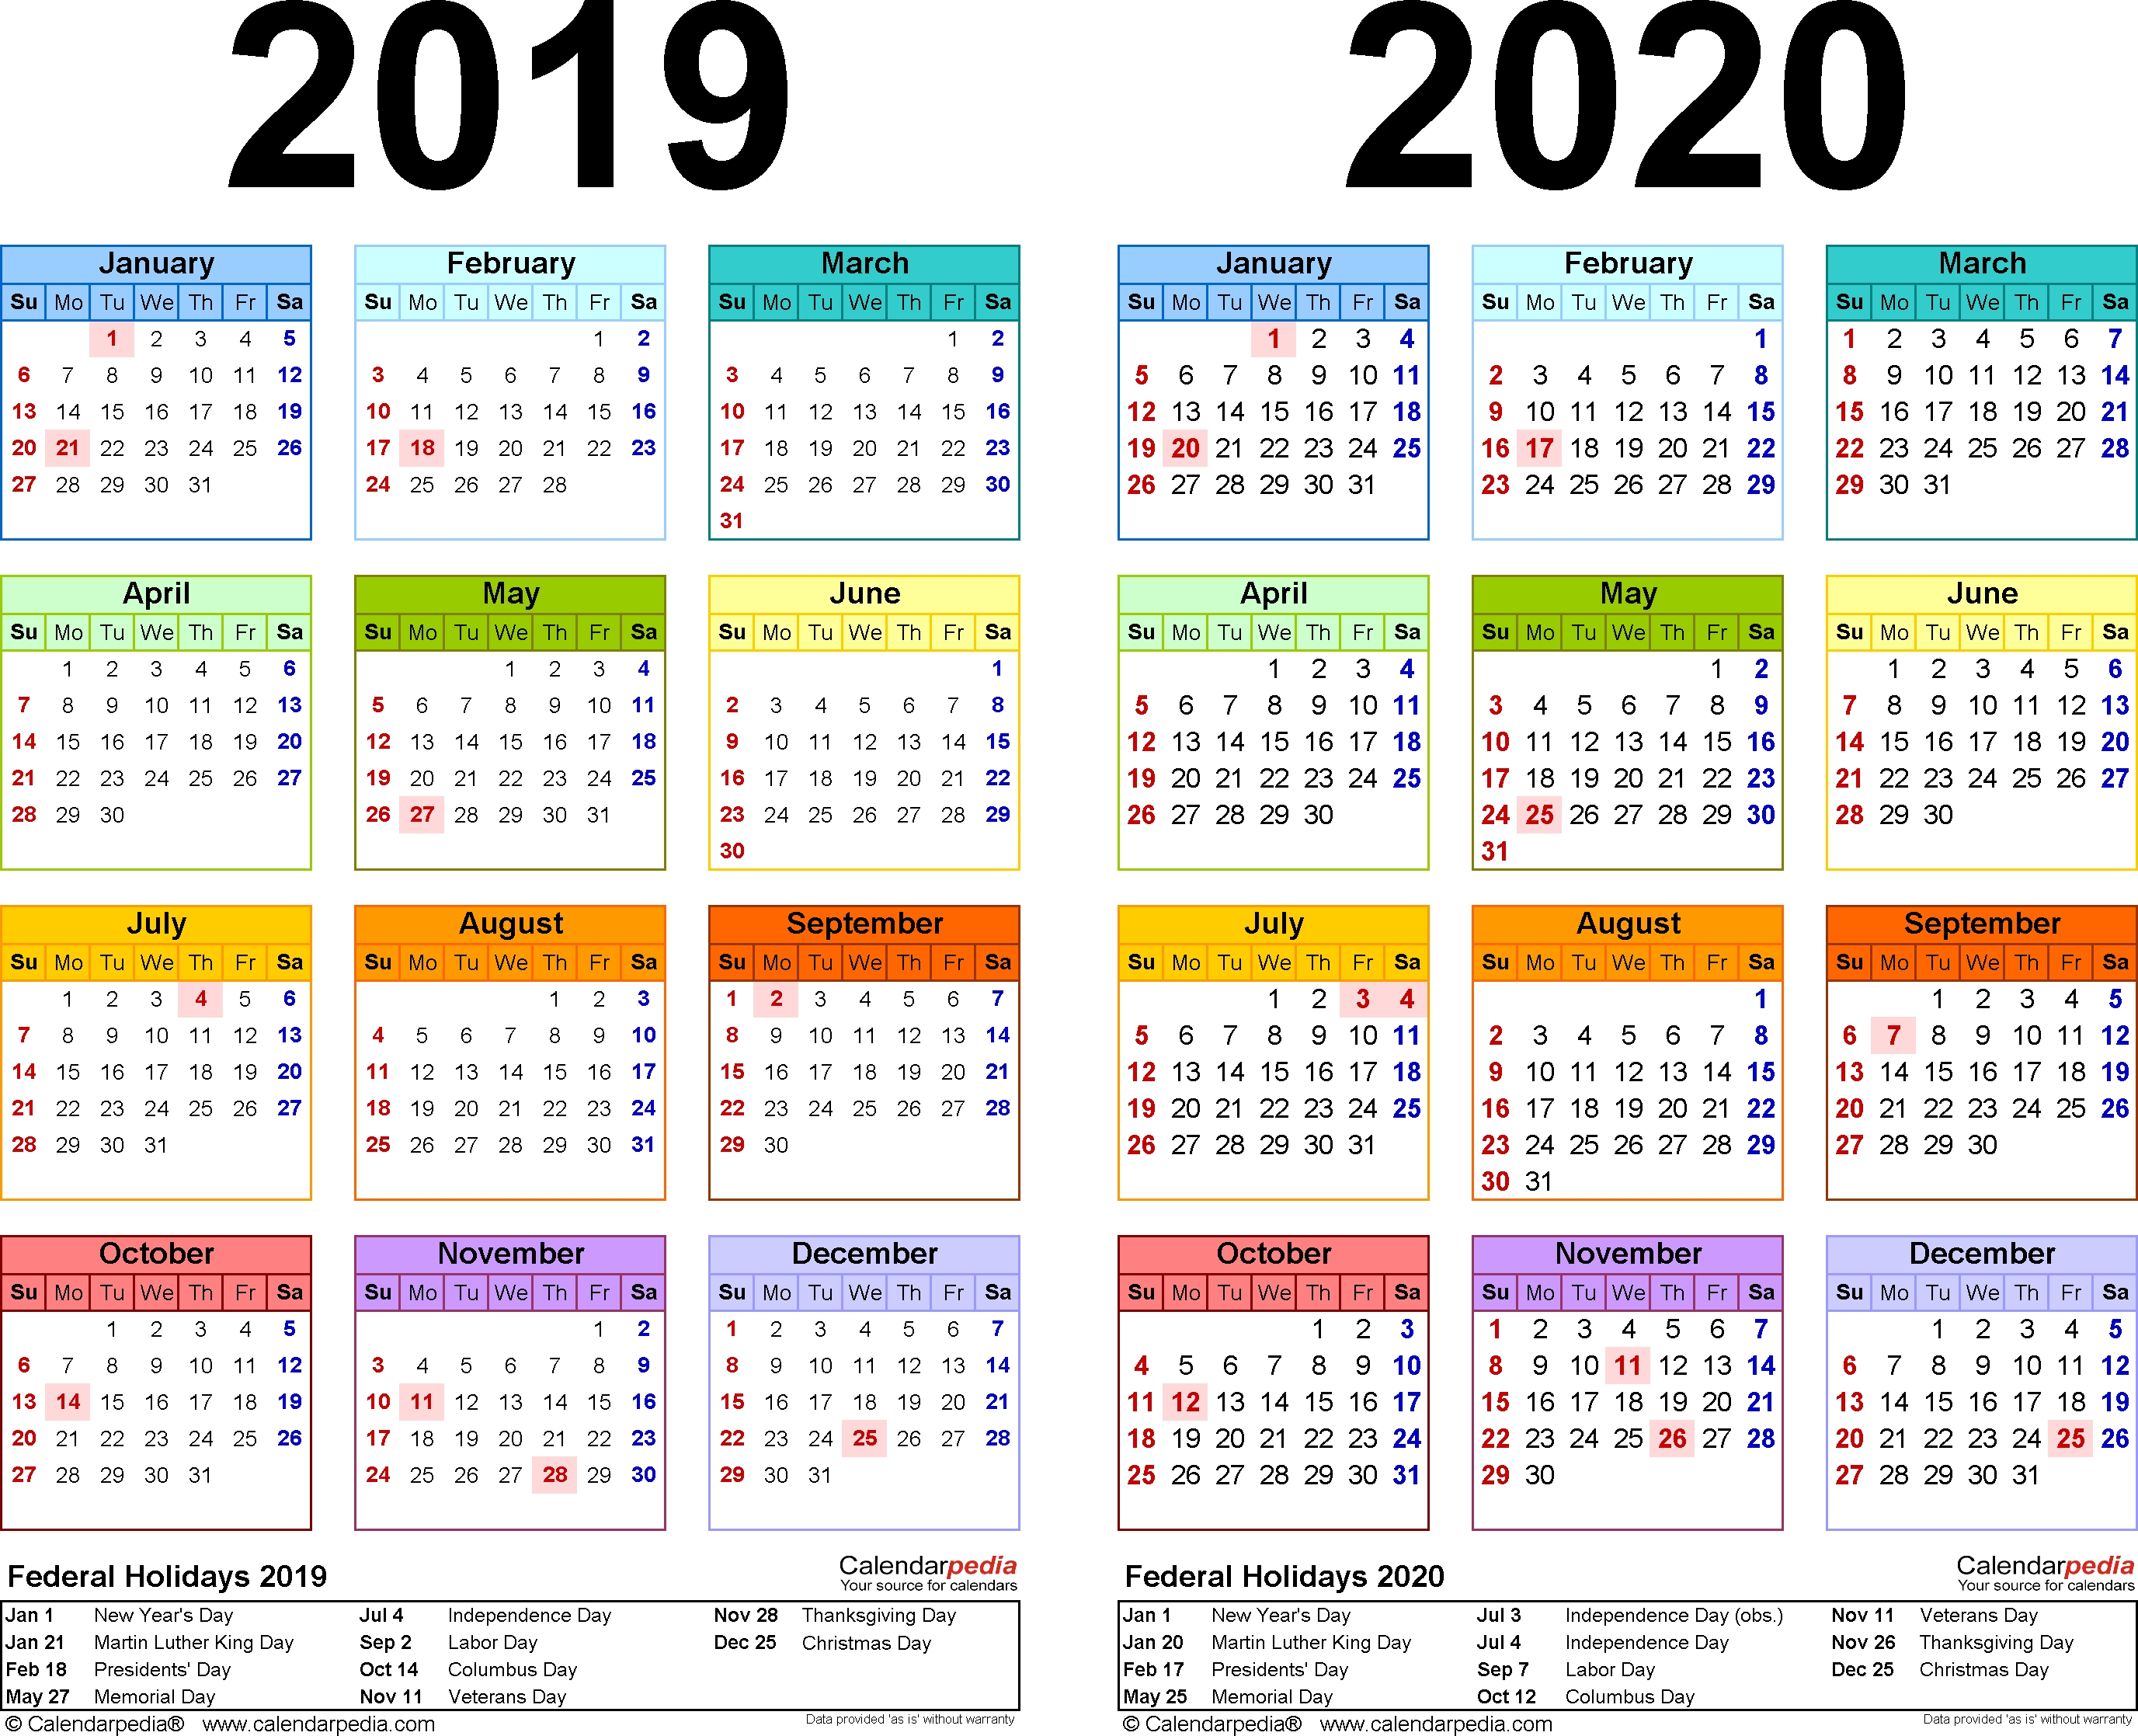 2019-2020 Calendar - Free Printable Two-Year Excel Calendars pertaining to Calendar 2019 2020 Xls